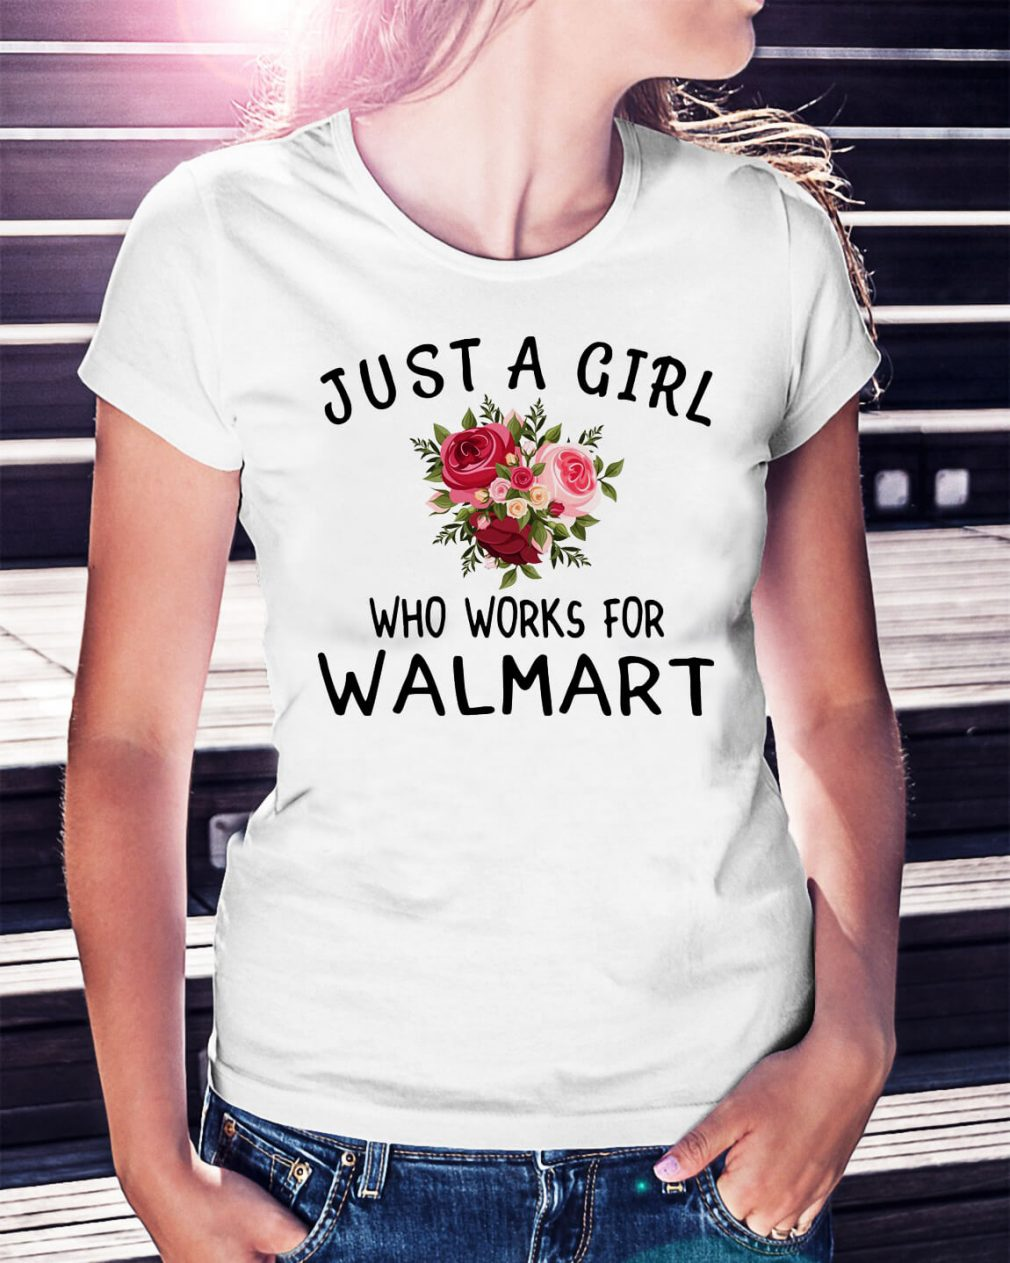 Just a girl who works for Walmart shirt